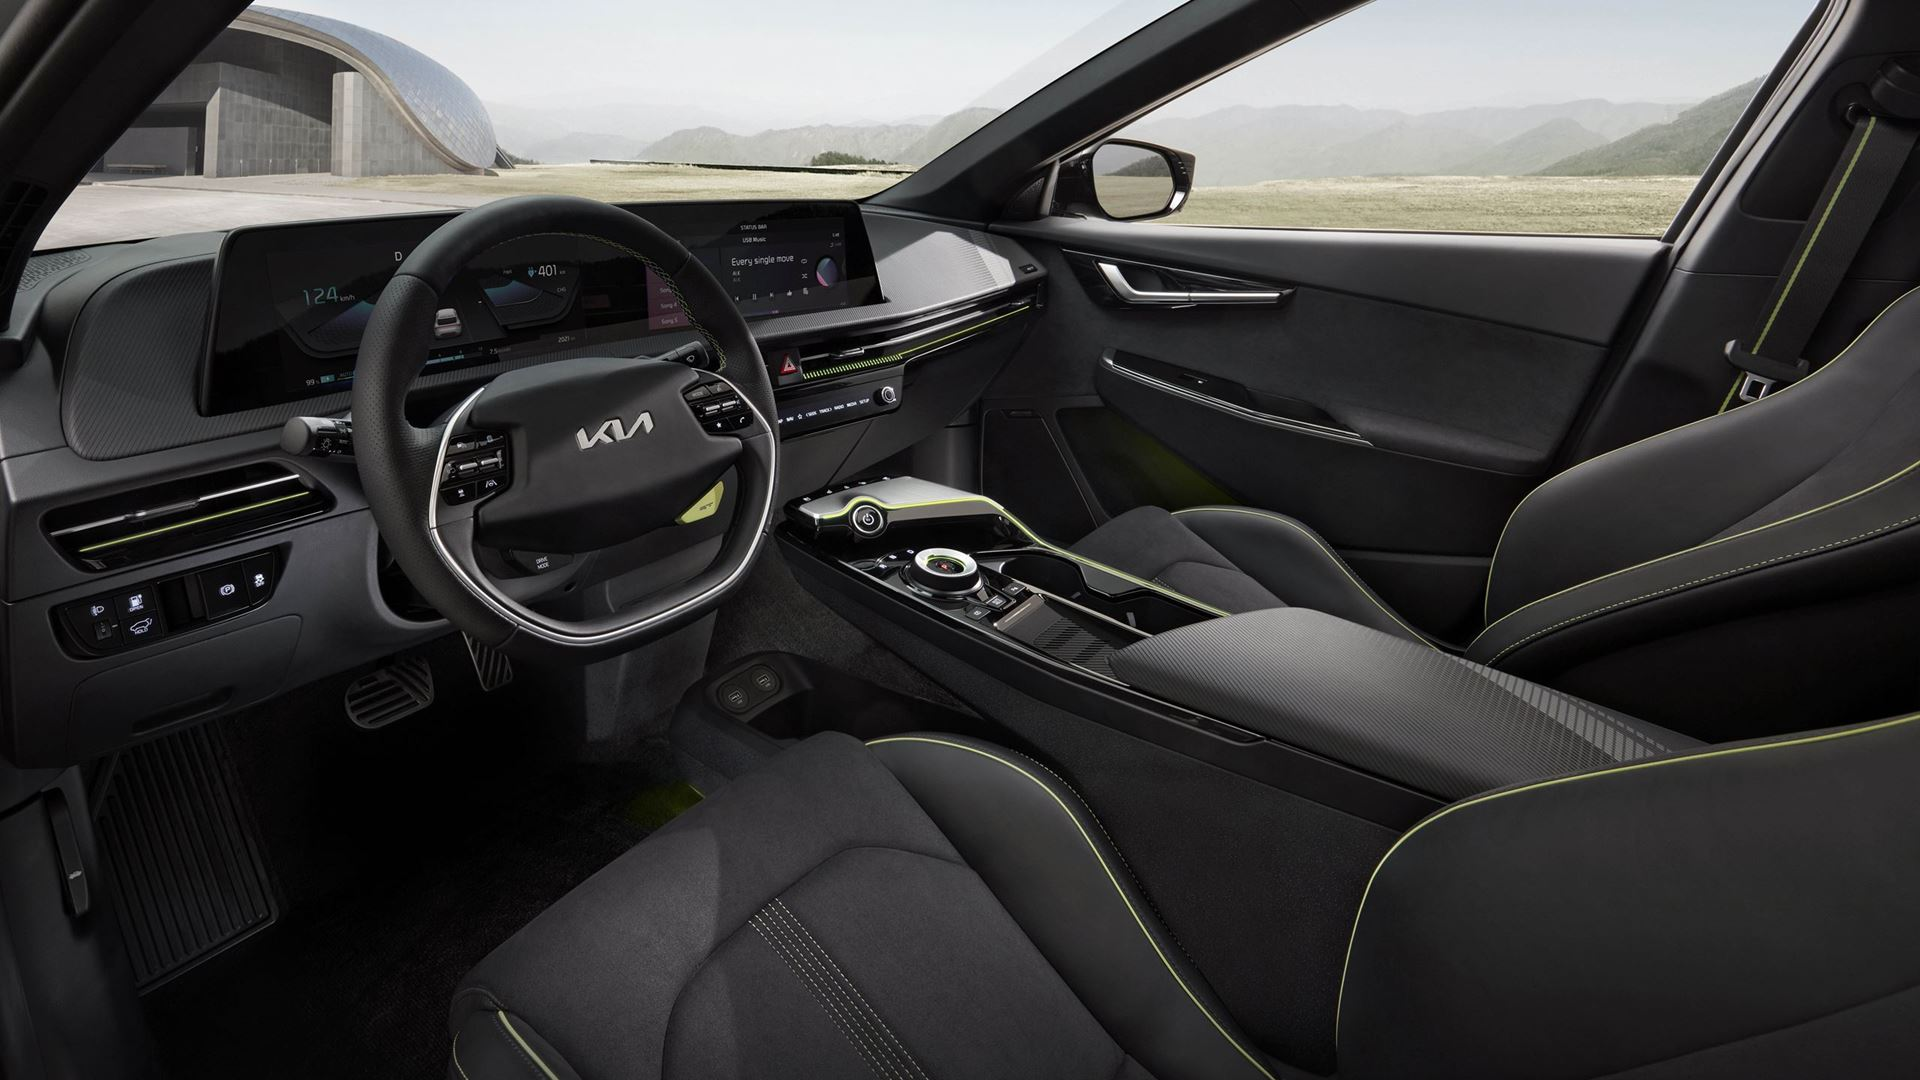 Kia EV6 redefines boundaries of electric mobility with inspiring design, exhilarating performance and innovative space - Image 5